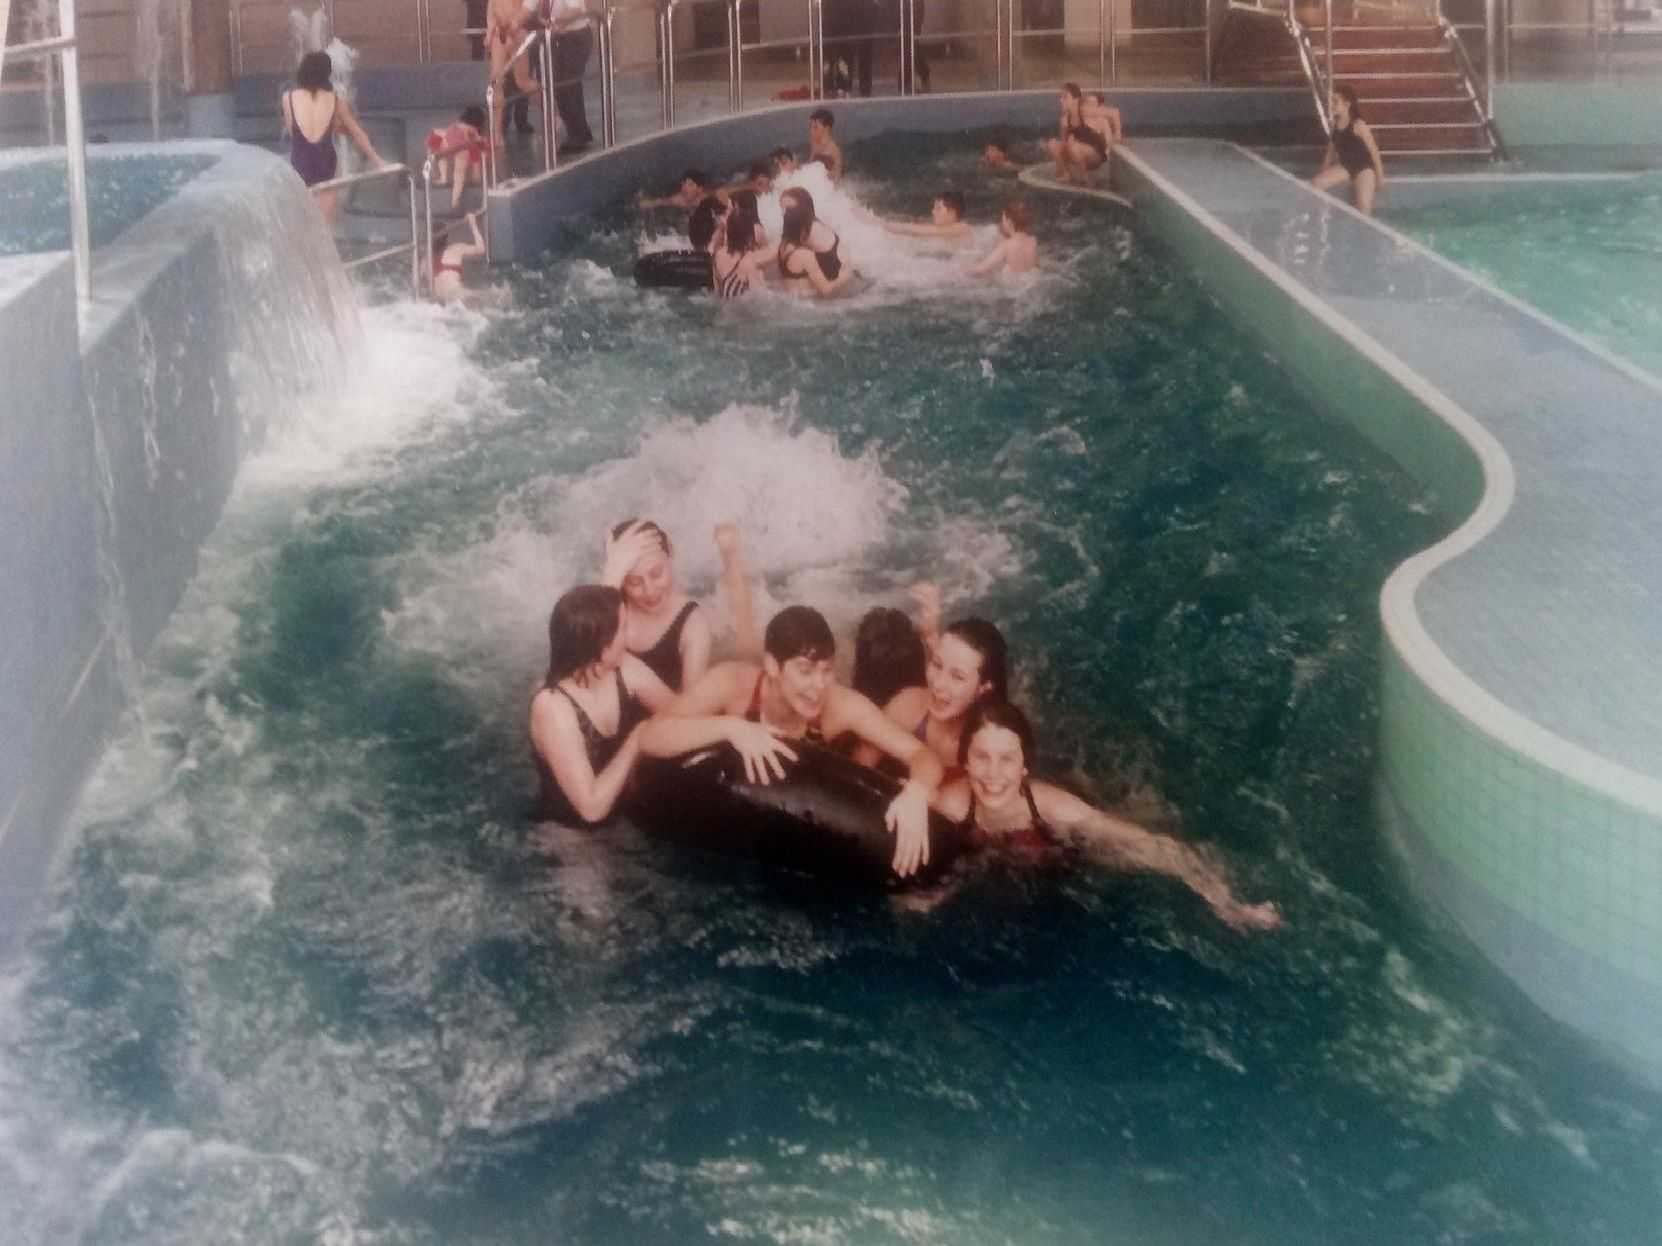 Youngsters have fun at Ponds Forge back in the early 90s.